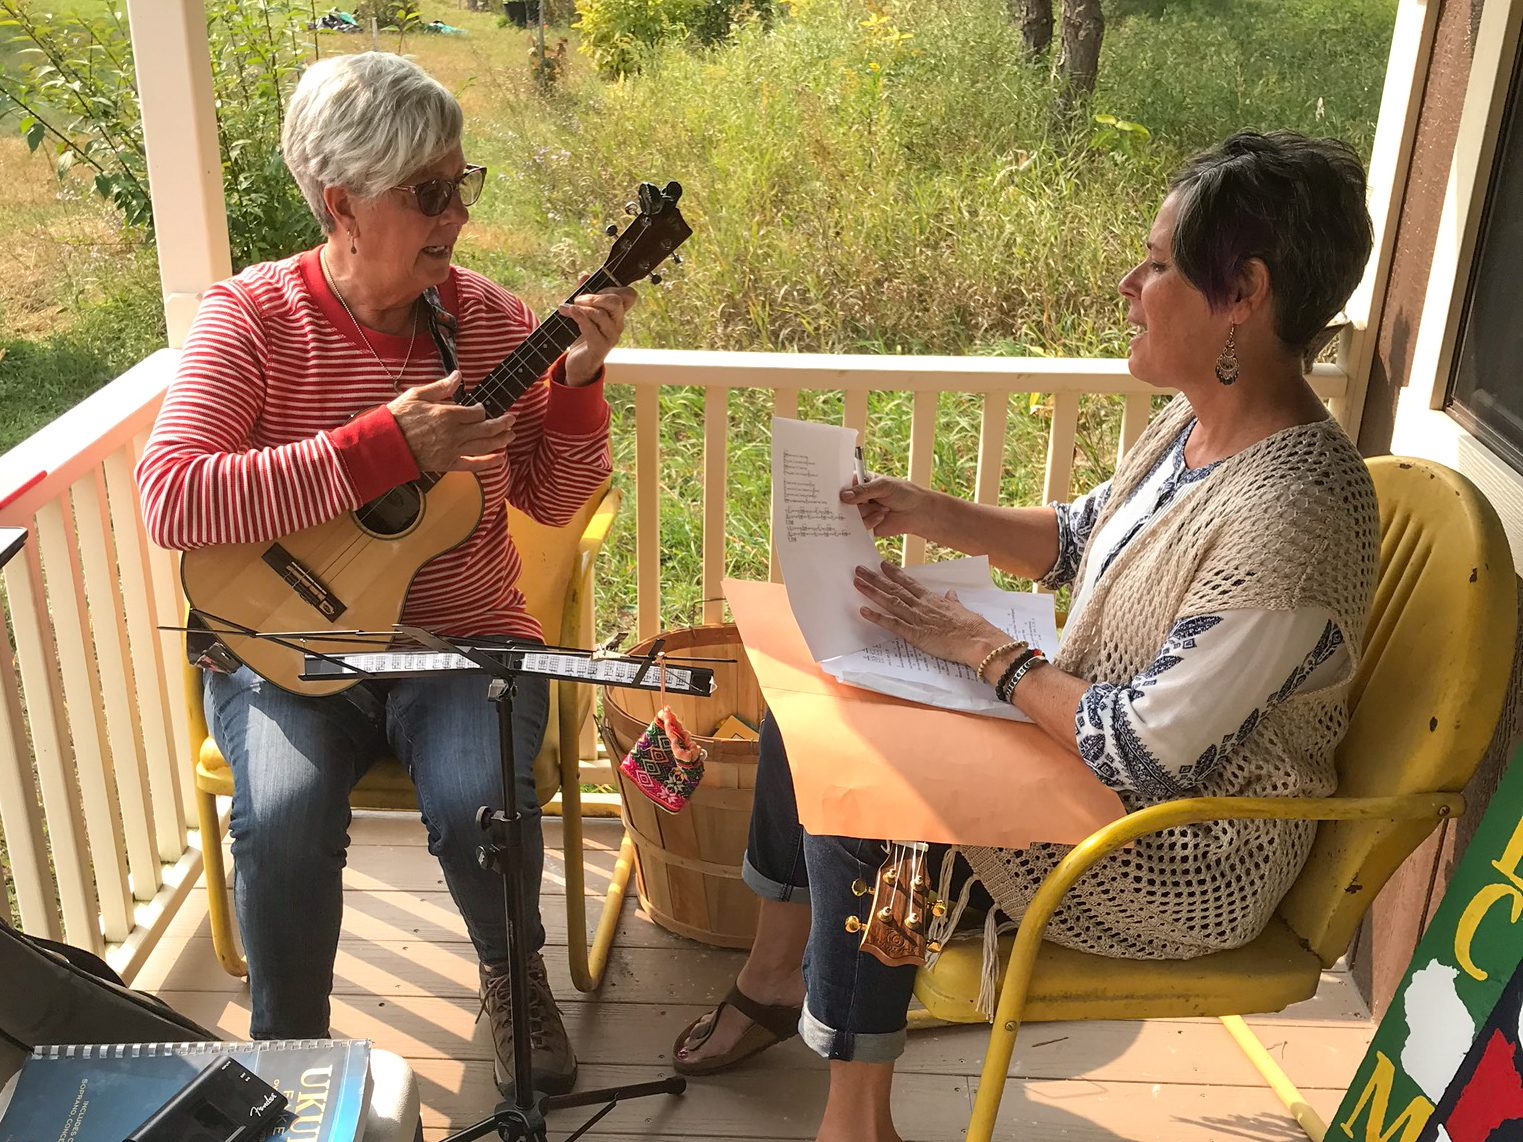 Playing the ukulele on the front porch of the cabin shed retail store